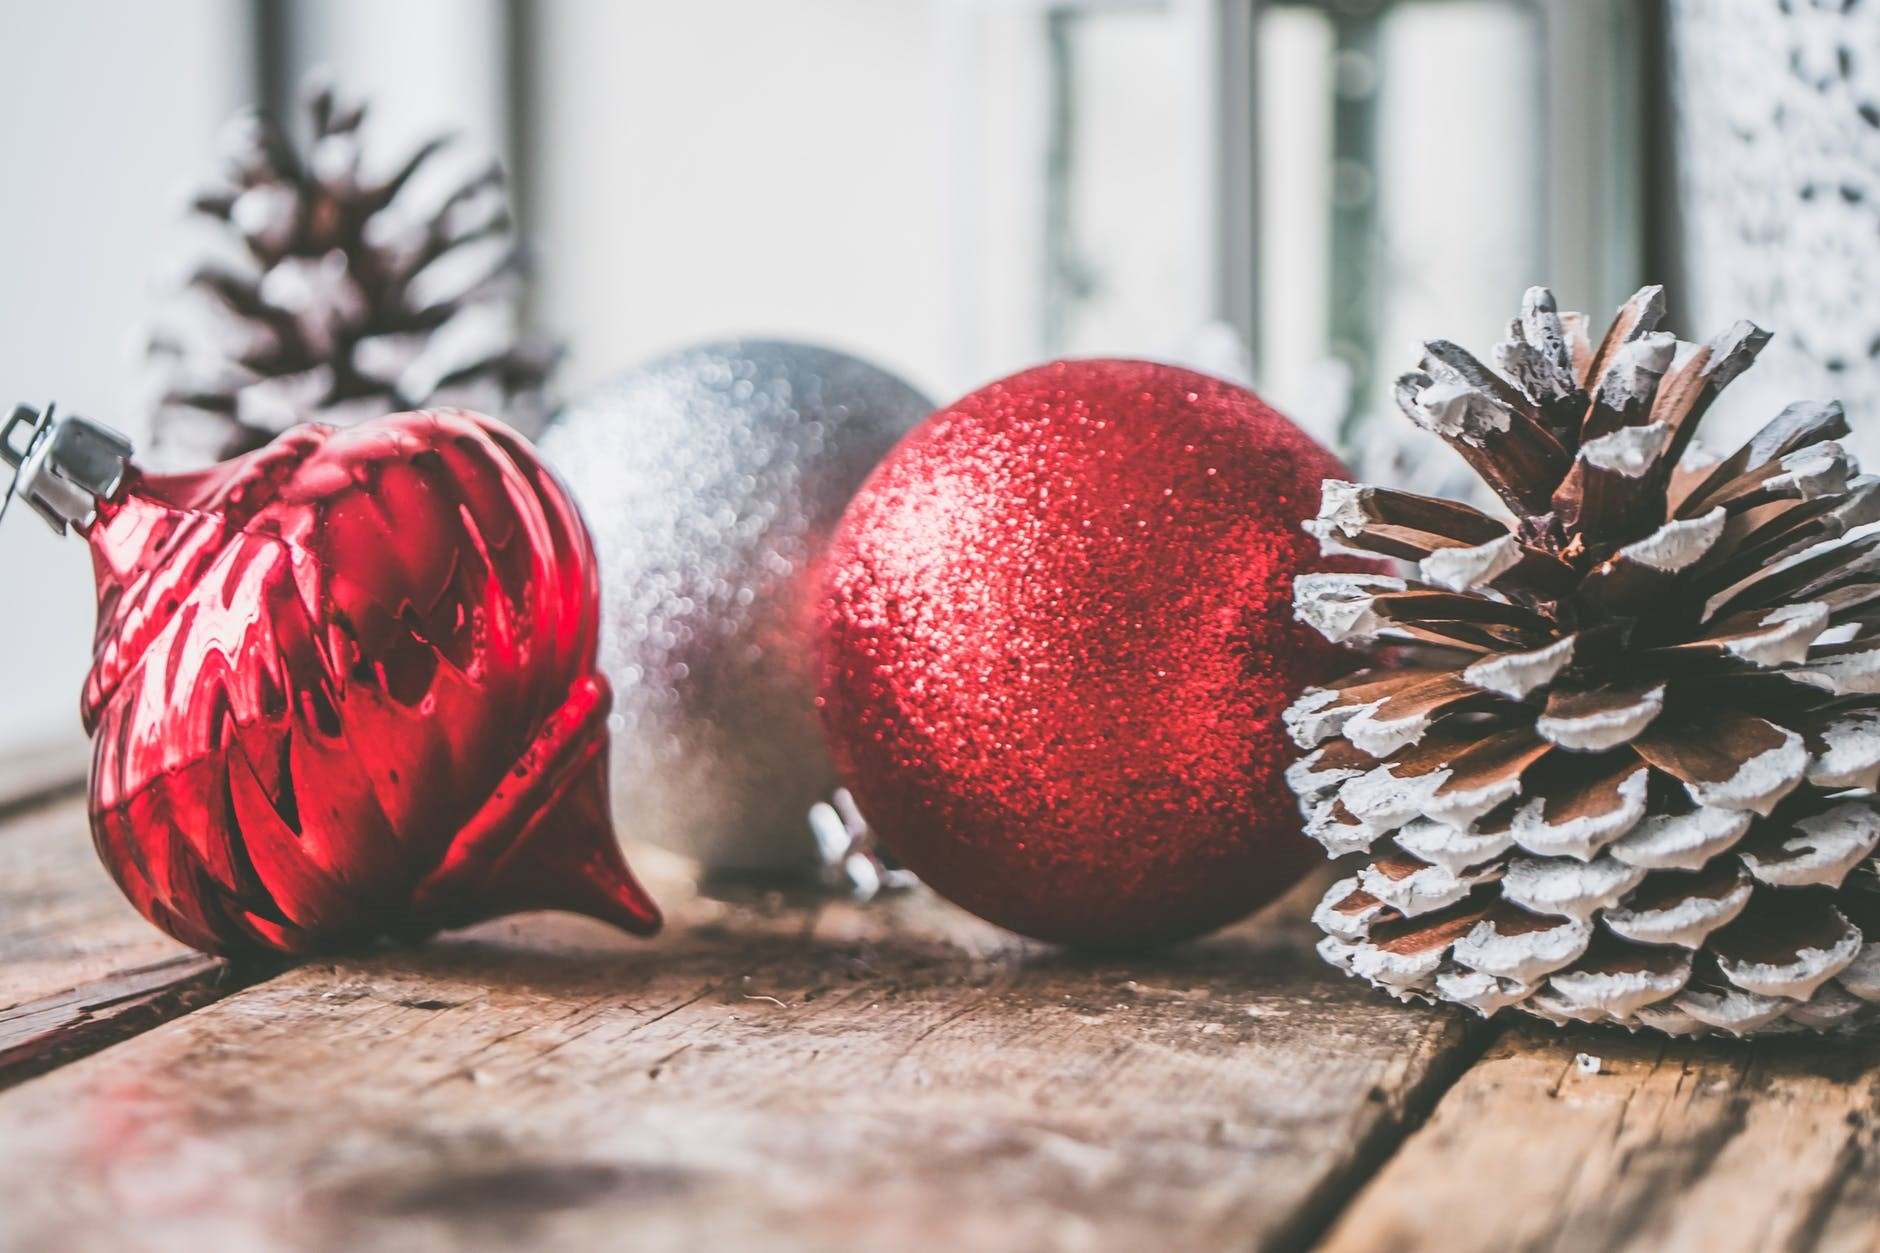 How To Make Your Home Festive For The Season